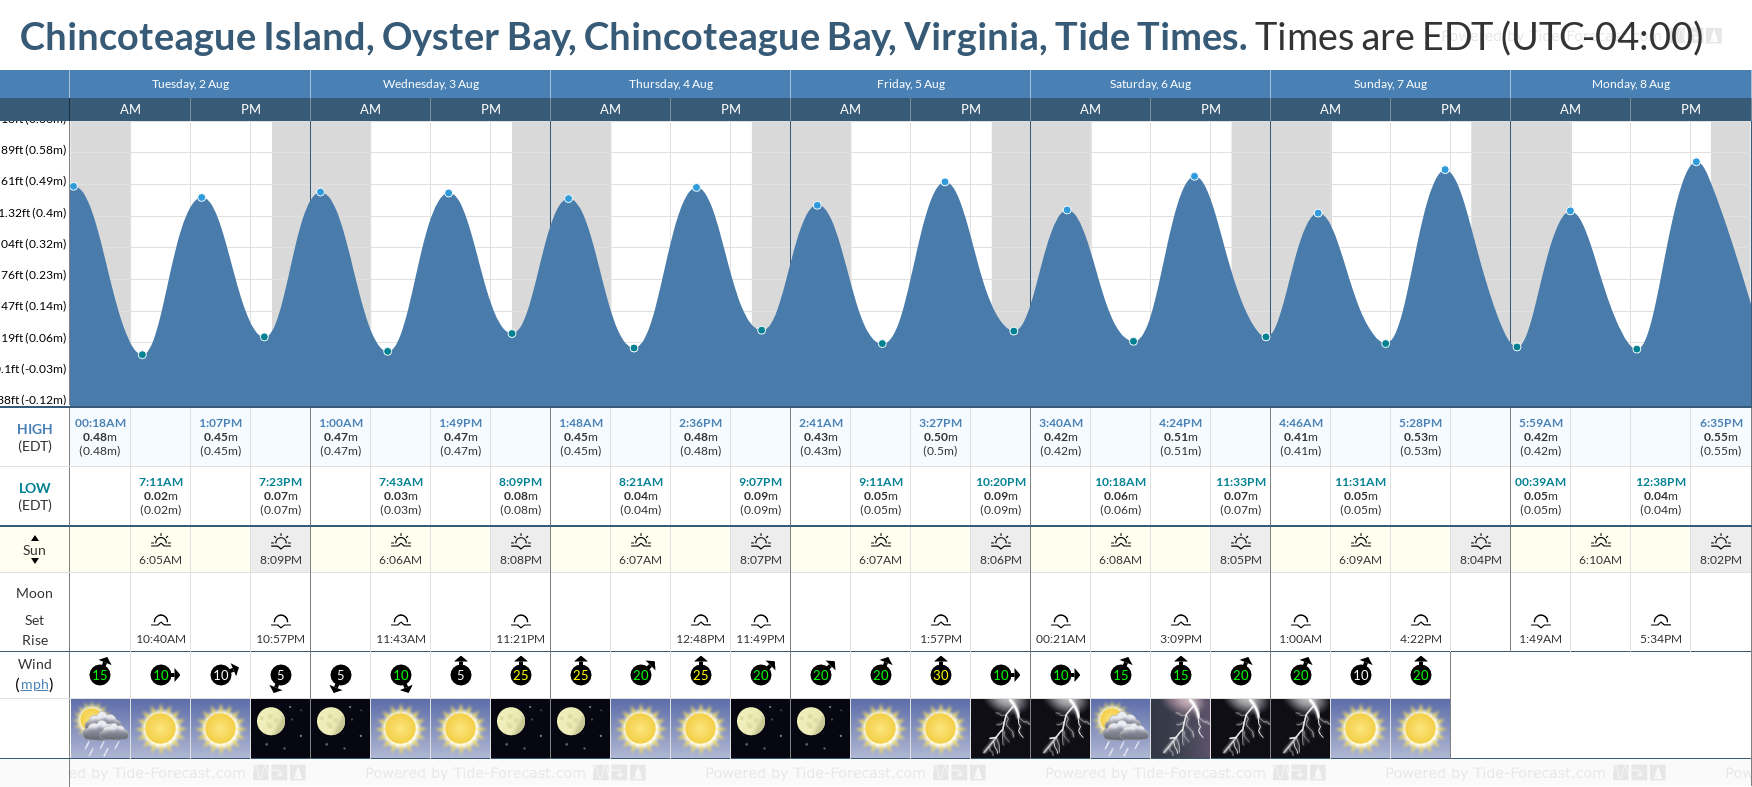 Chincoteague Island, Oyster Bay, Chincoteague Bay, Virginia Tide Chart including high and low tide tide times for the next 7 days